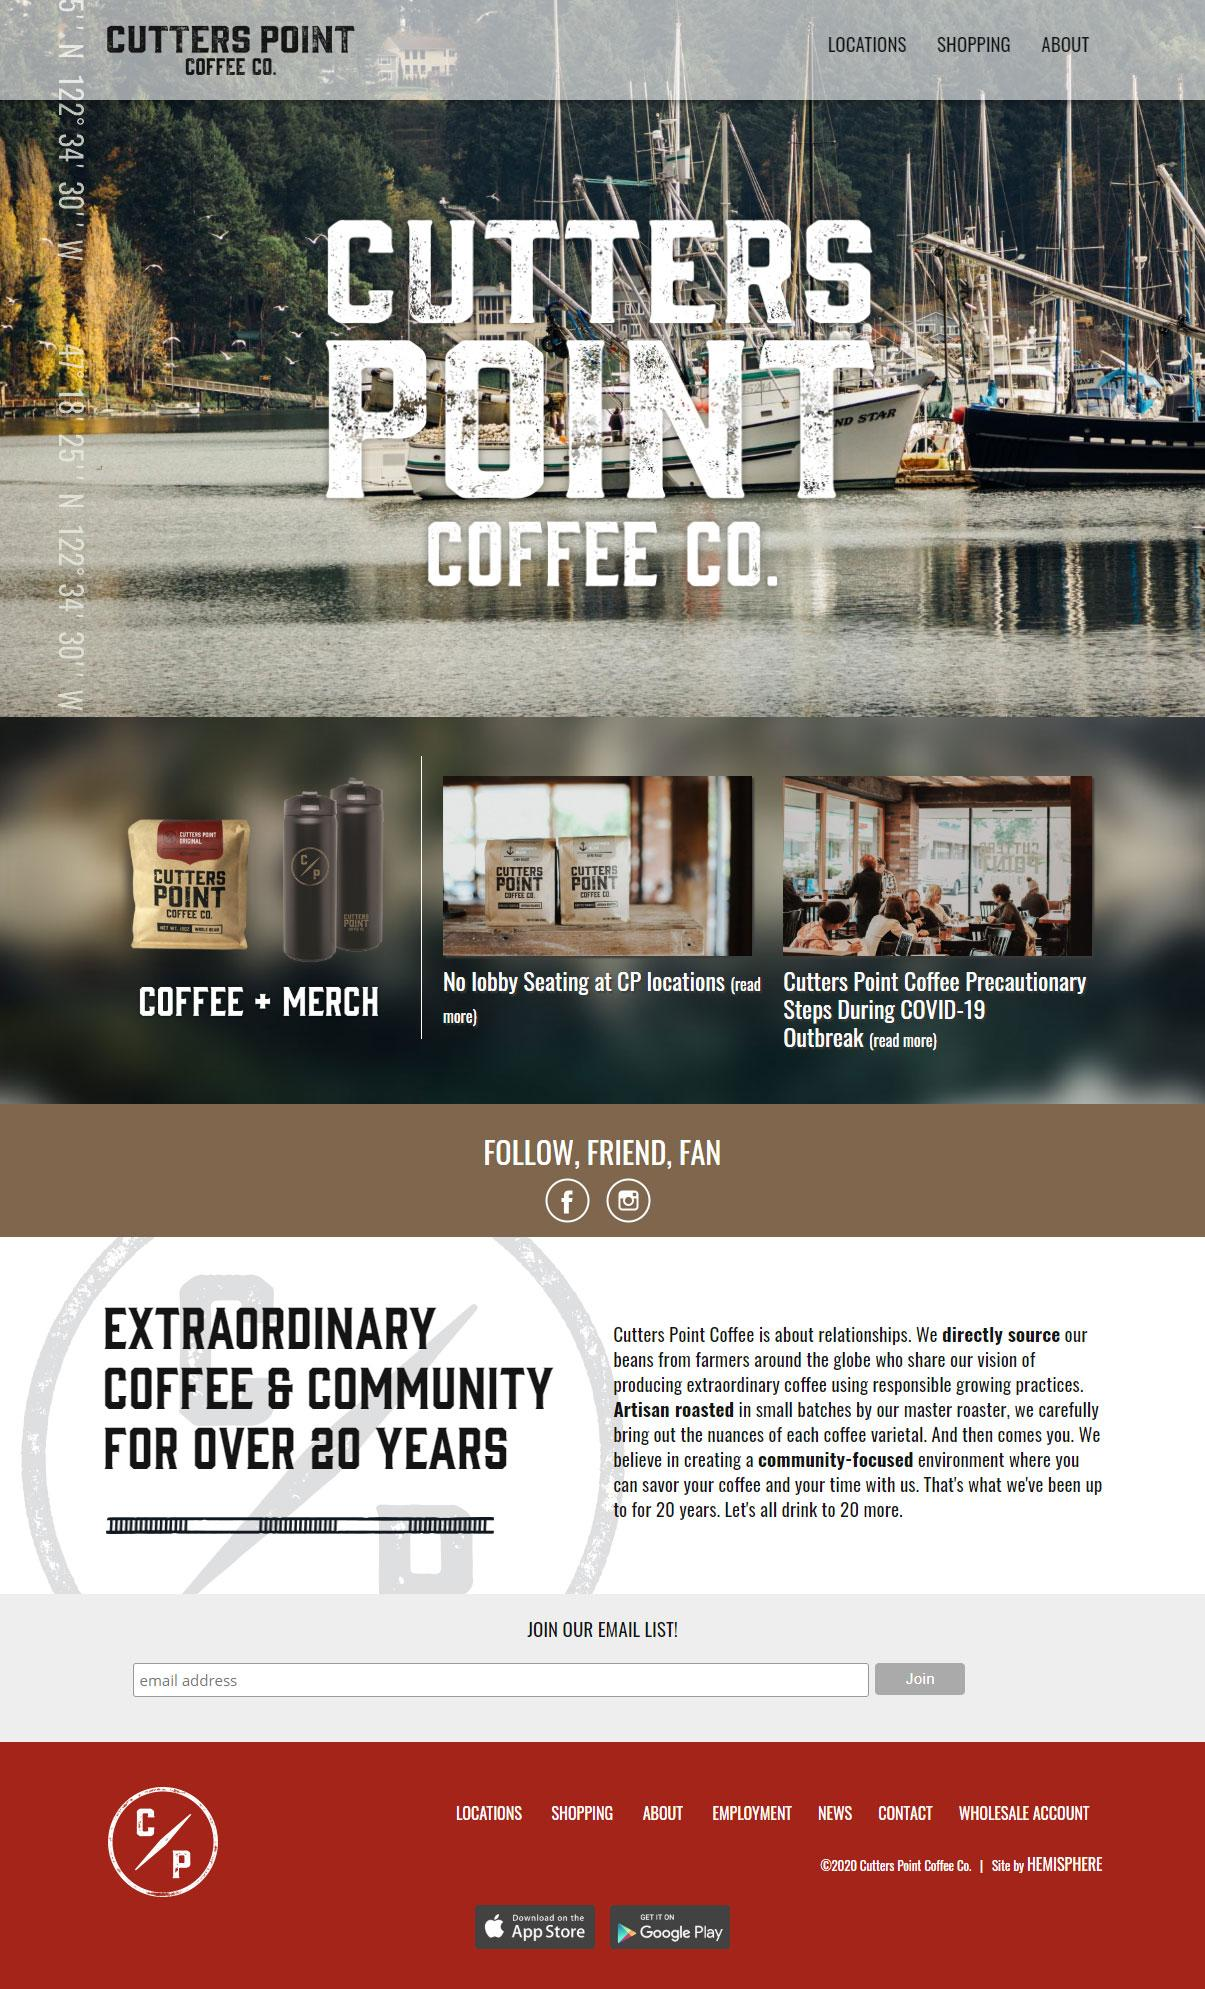 Cutters Point Coffee website homepage layout